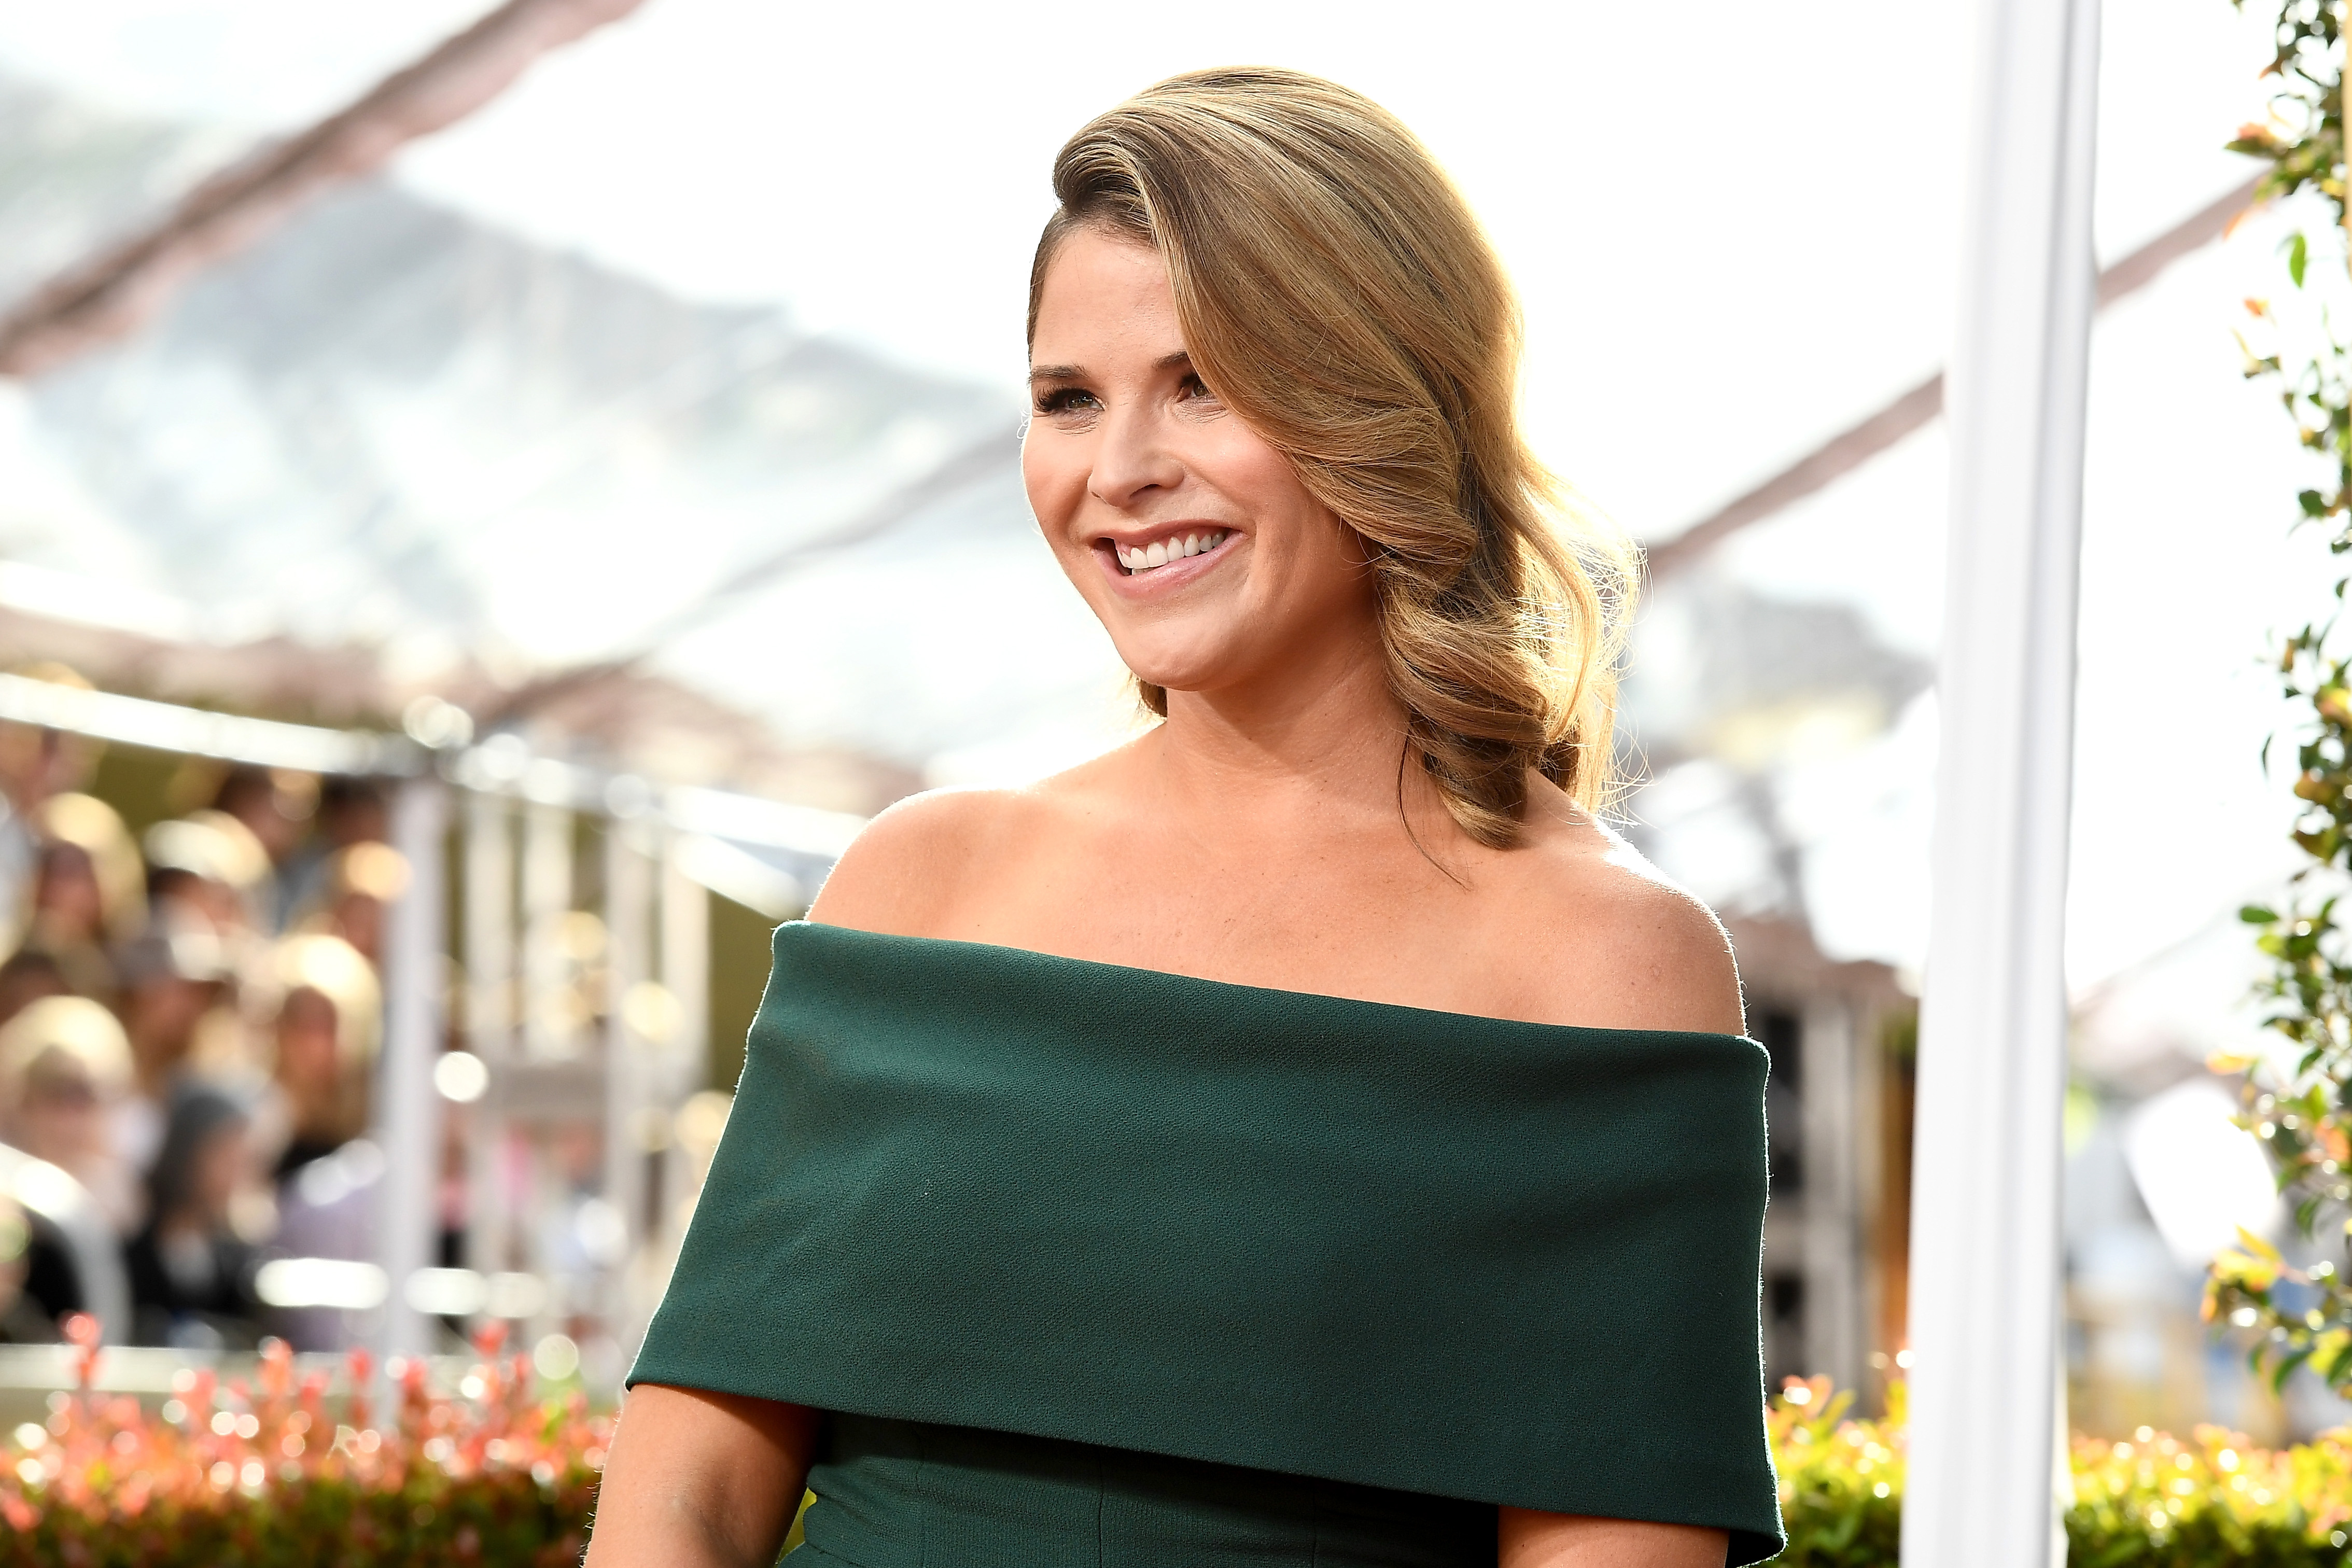 Journalist Jenna Bush Hager arrive to the 74th Annual Golden Globe Awards held at the Beverly Hilton Hotel on Jan. 8, 2017.